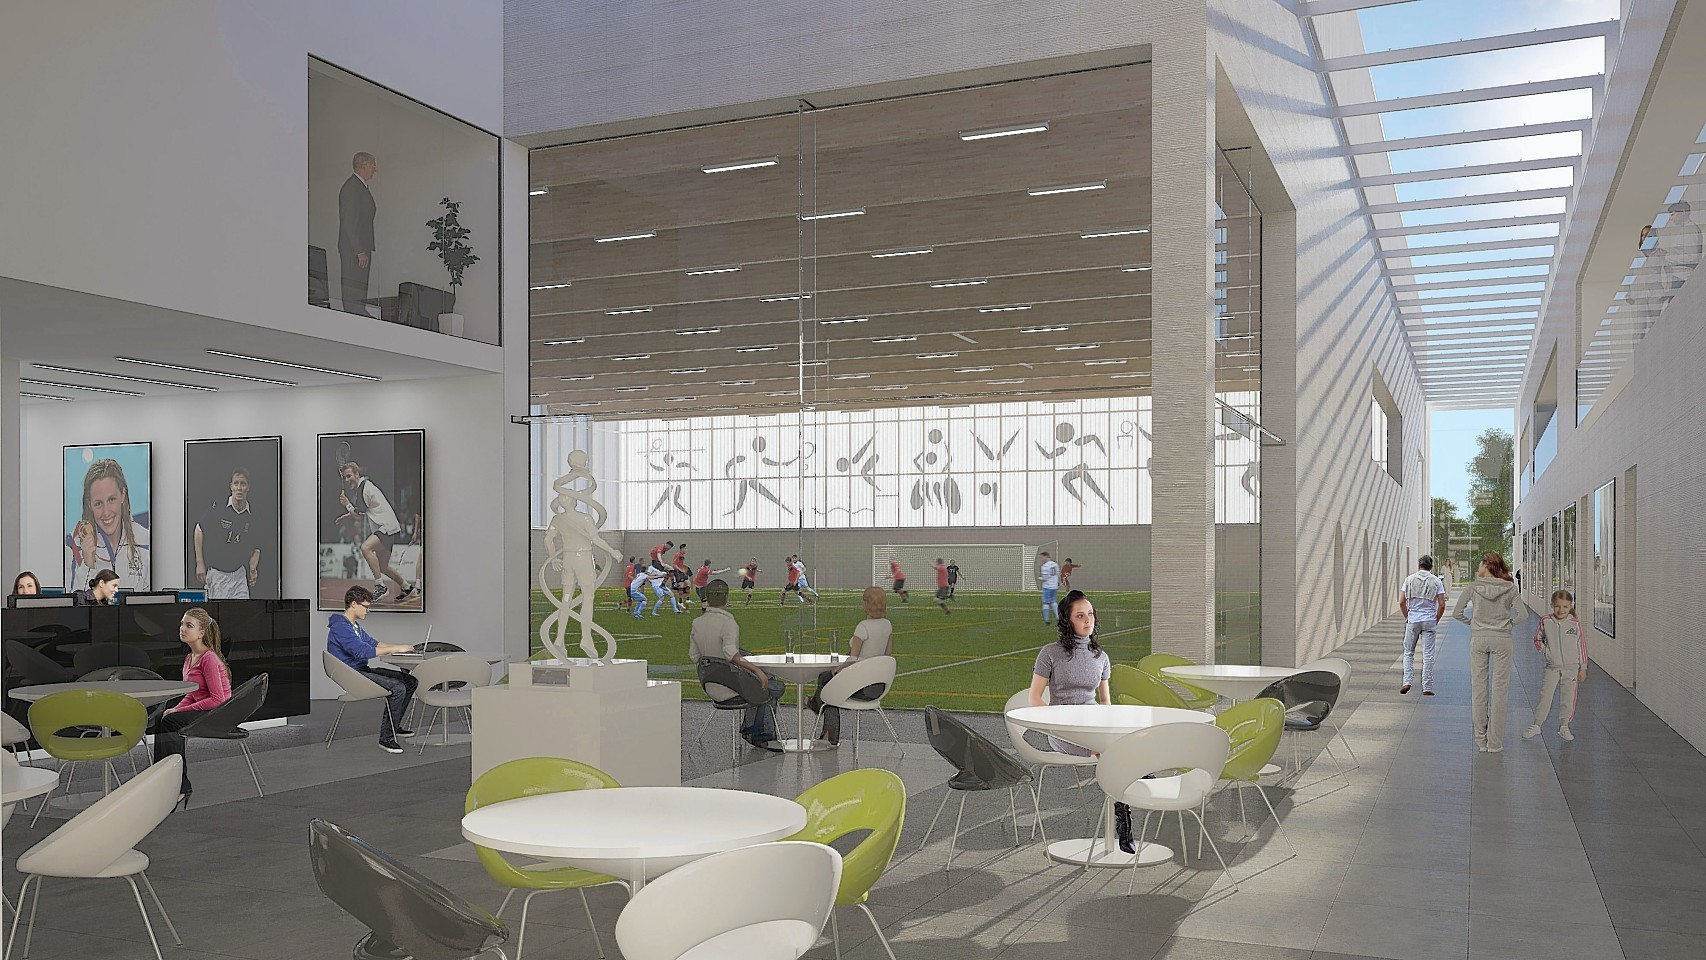 A cafe in the proposed Garioch Sports and Community Centre